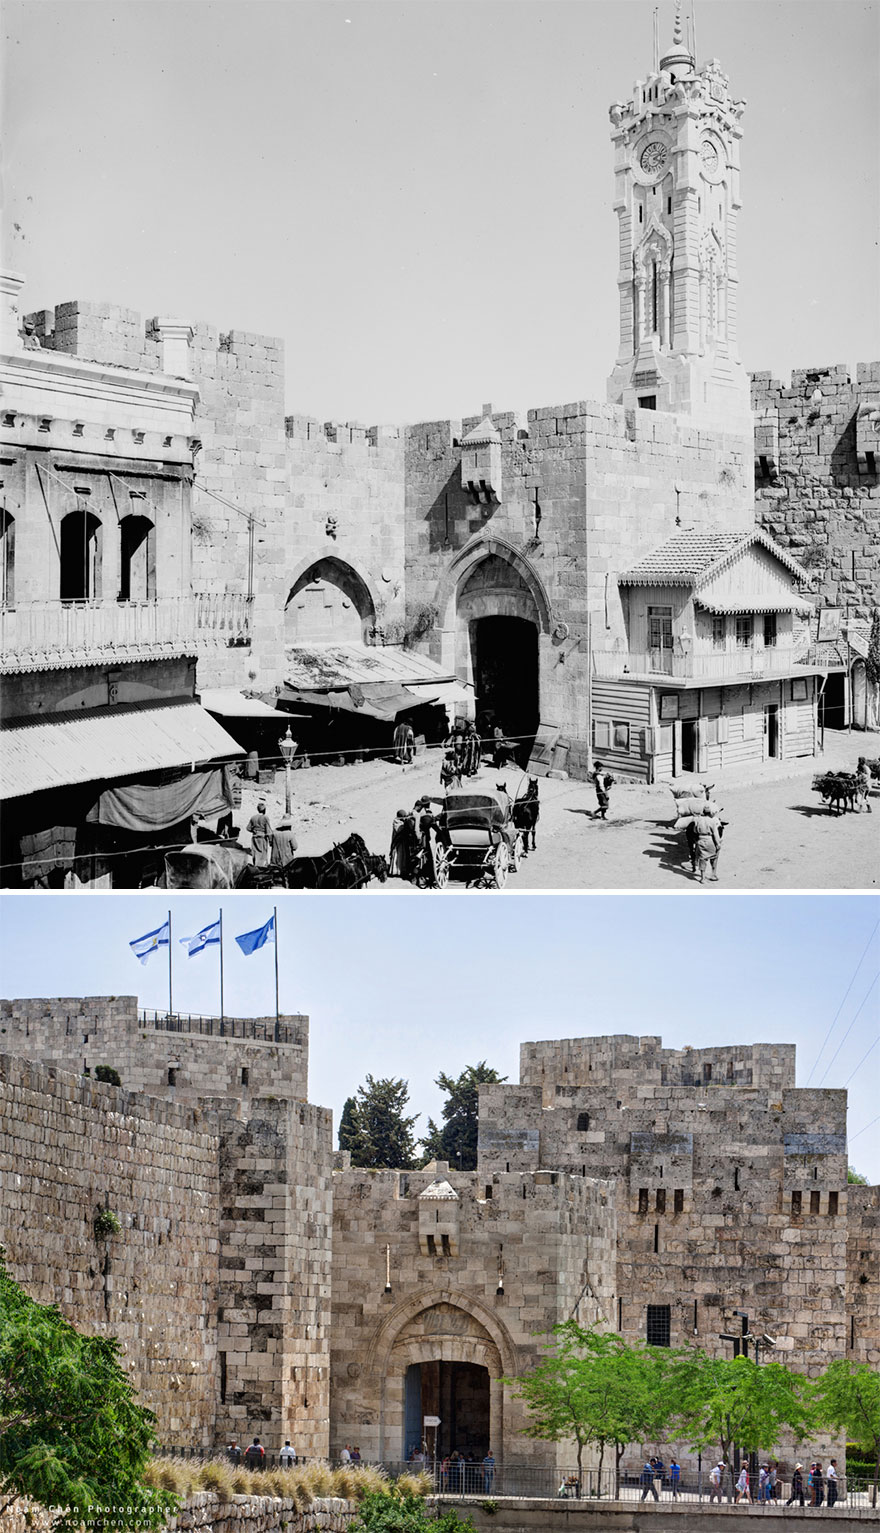 Jaffa Gate: One Of The Main Entrance Gates To The Old City